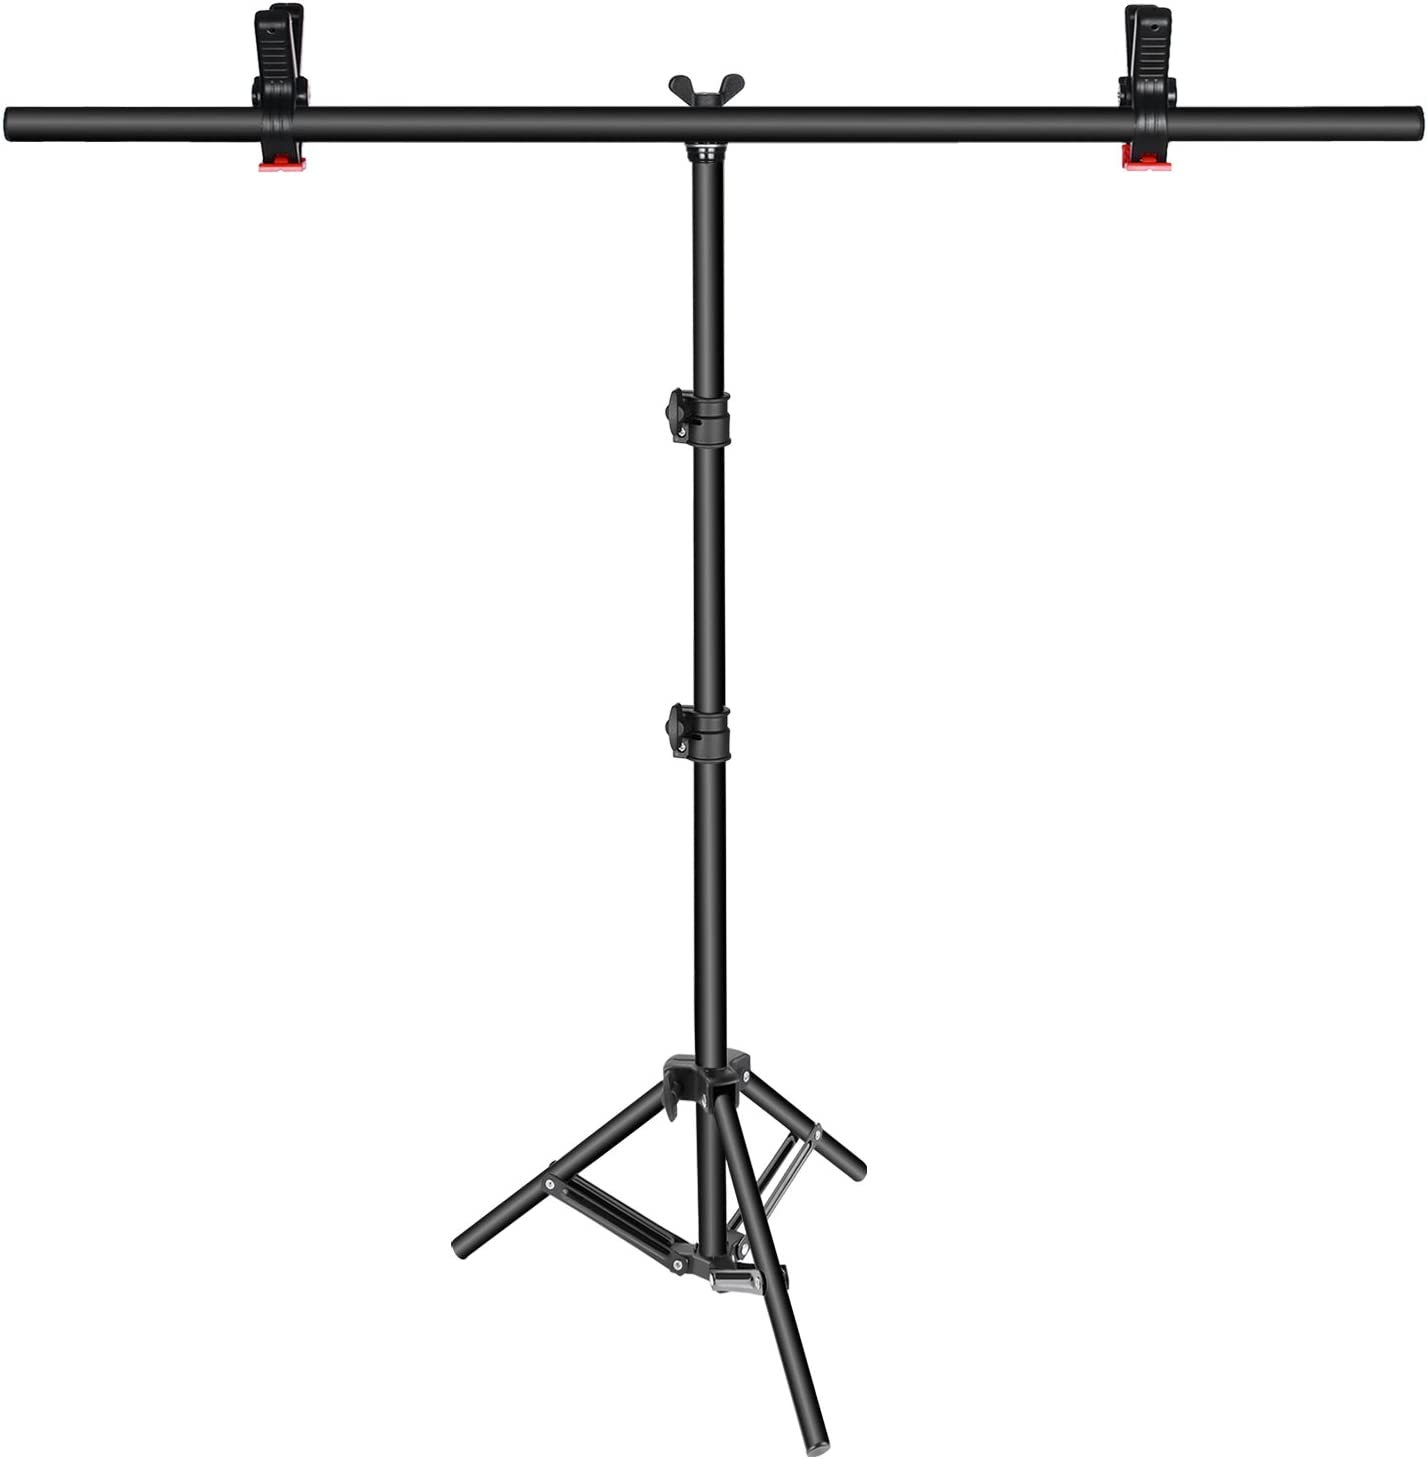 UK Backdrop Stand T Metal PVC Background Photography Support System Clamp